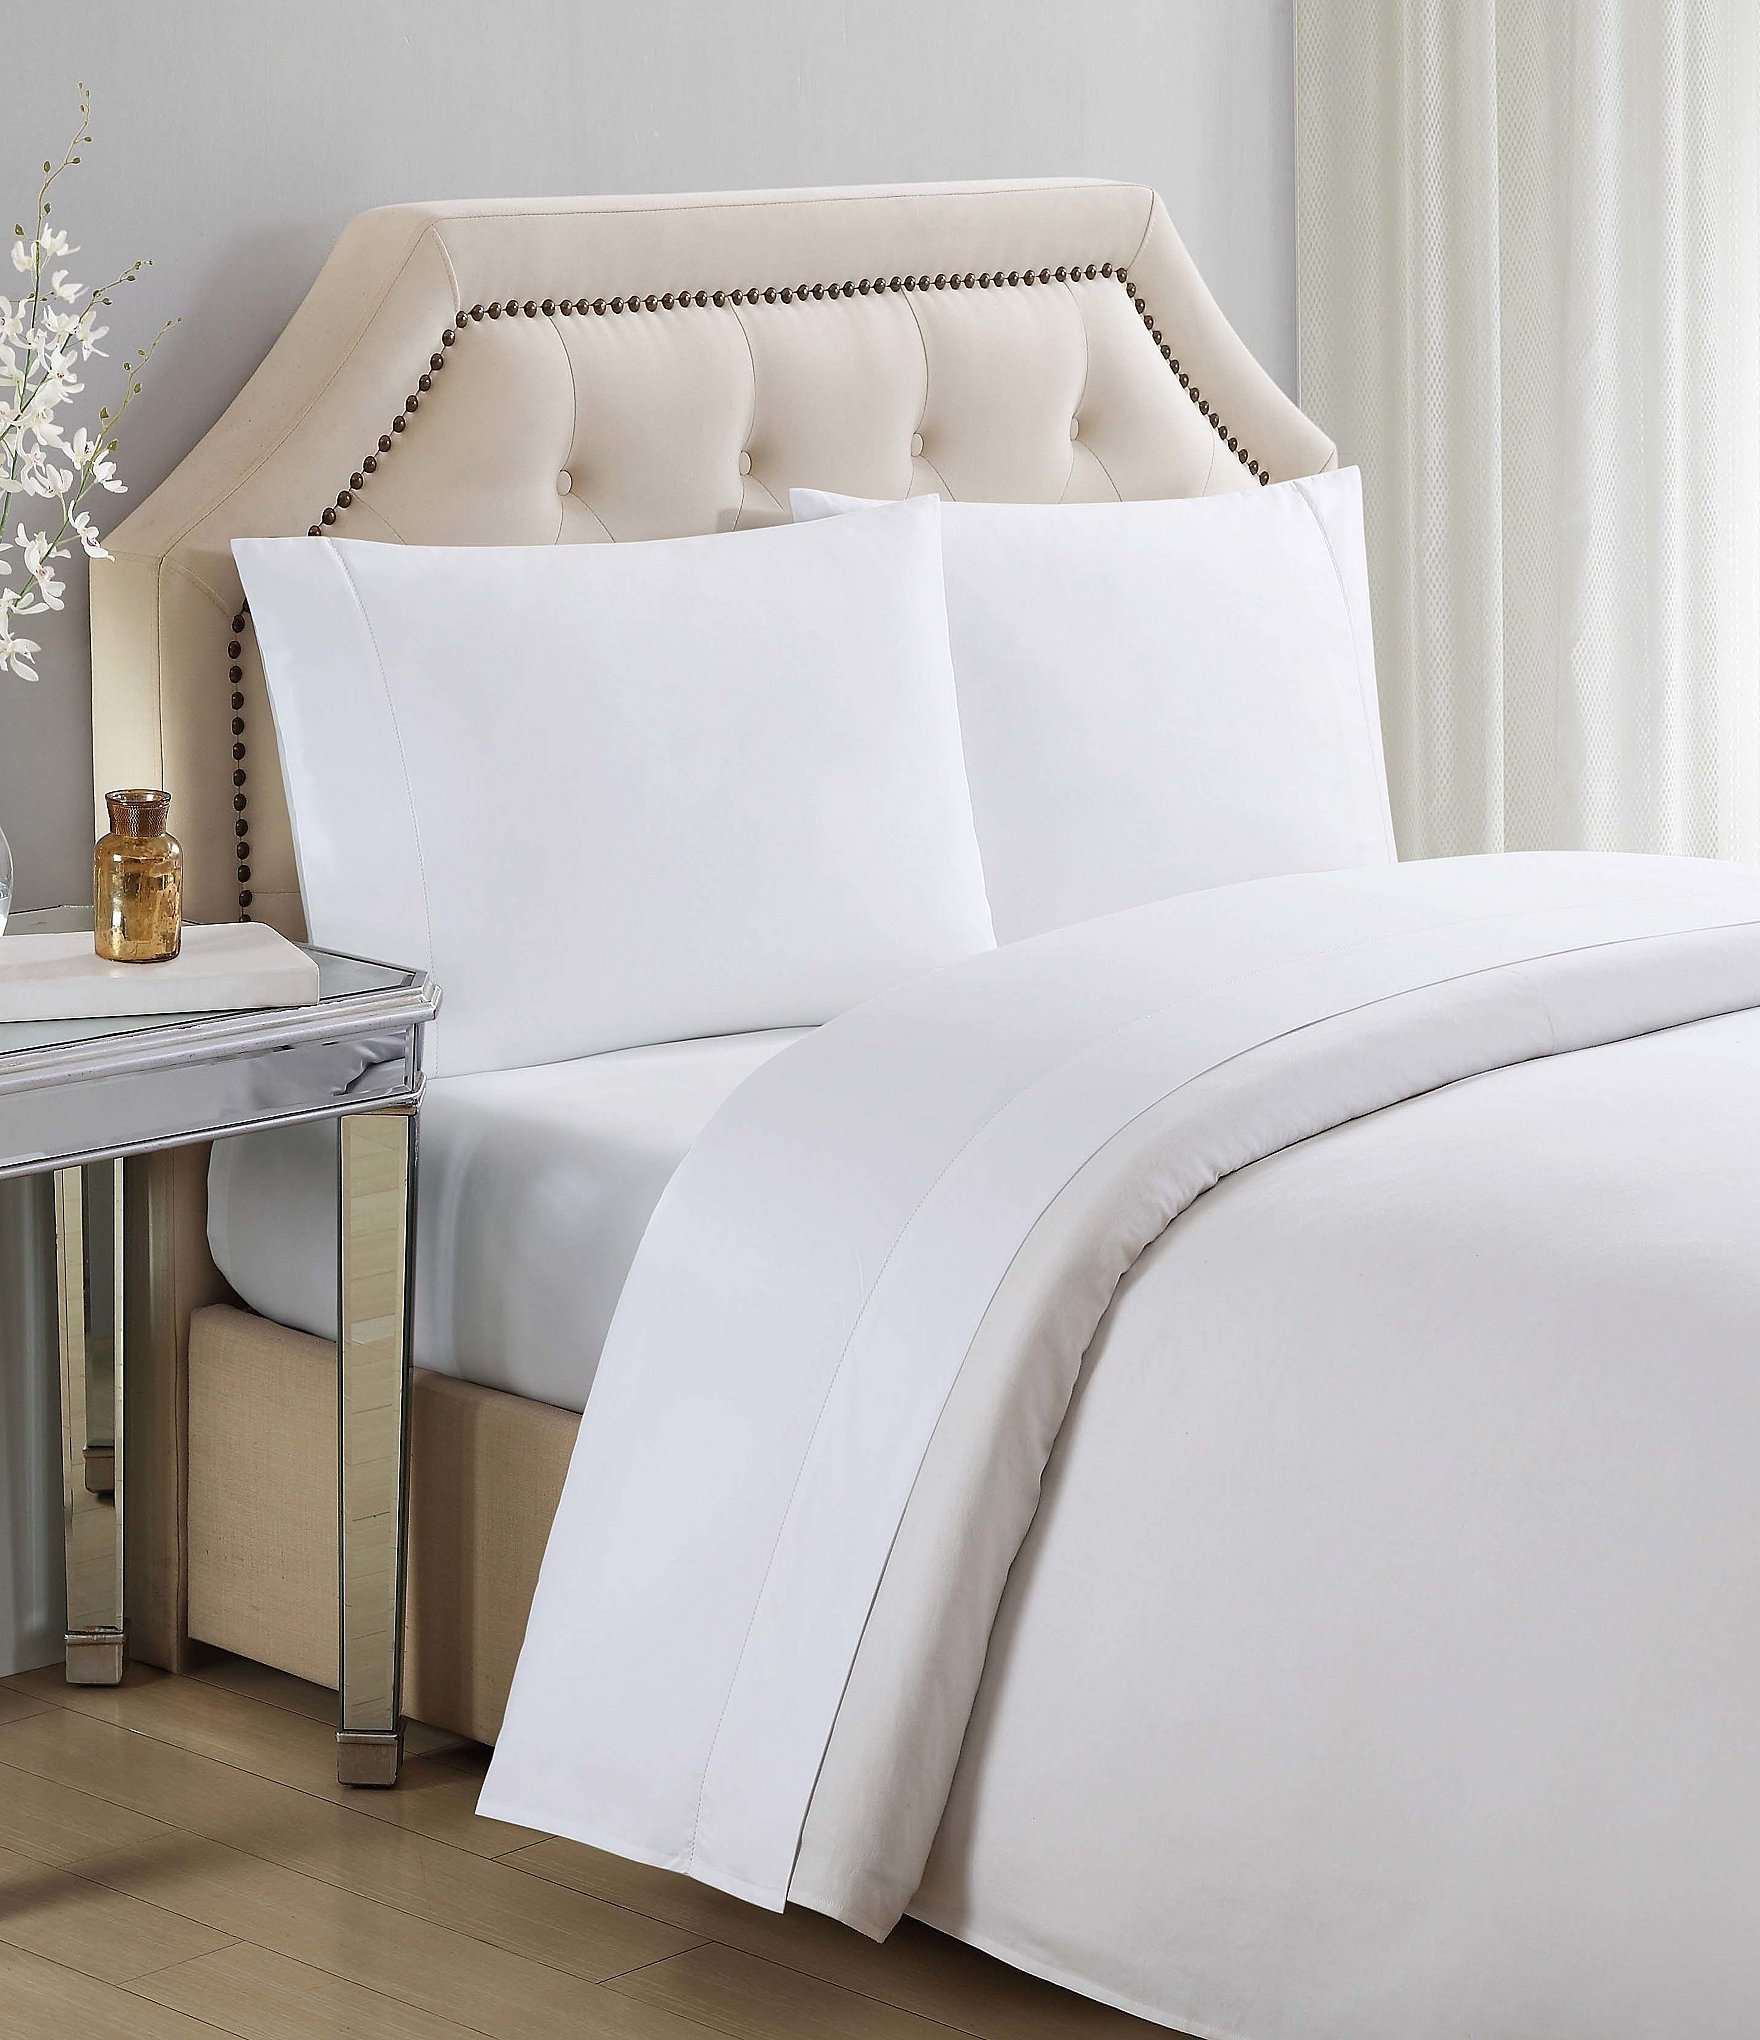 Costco Charisma Sheets White: Charisma 610 Thread Count Ultra Cotton Solid Sheet Set